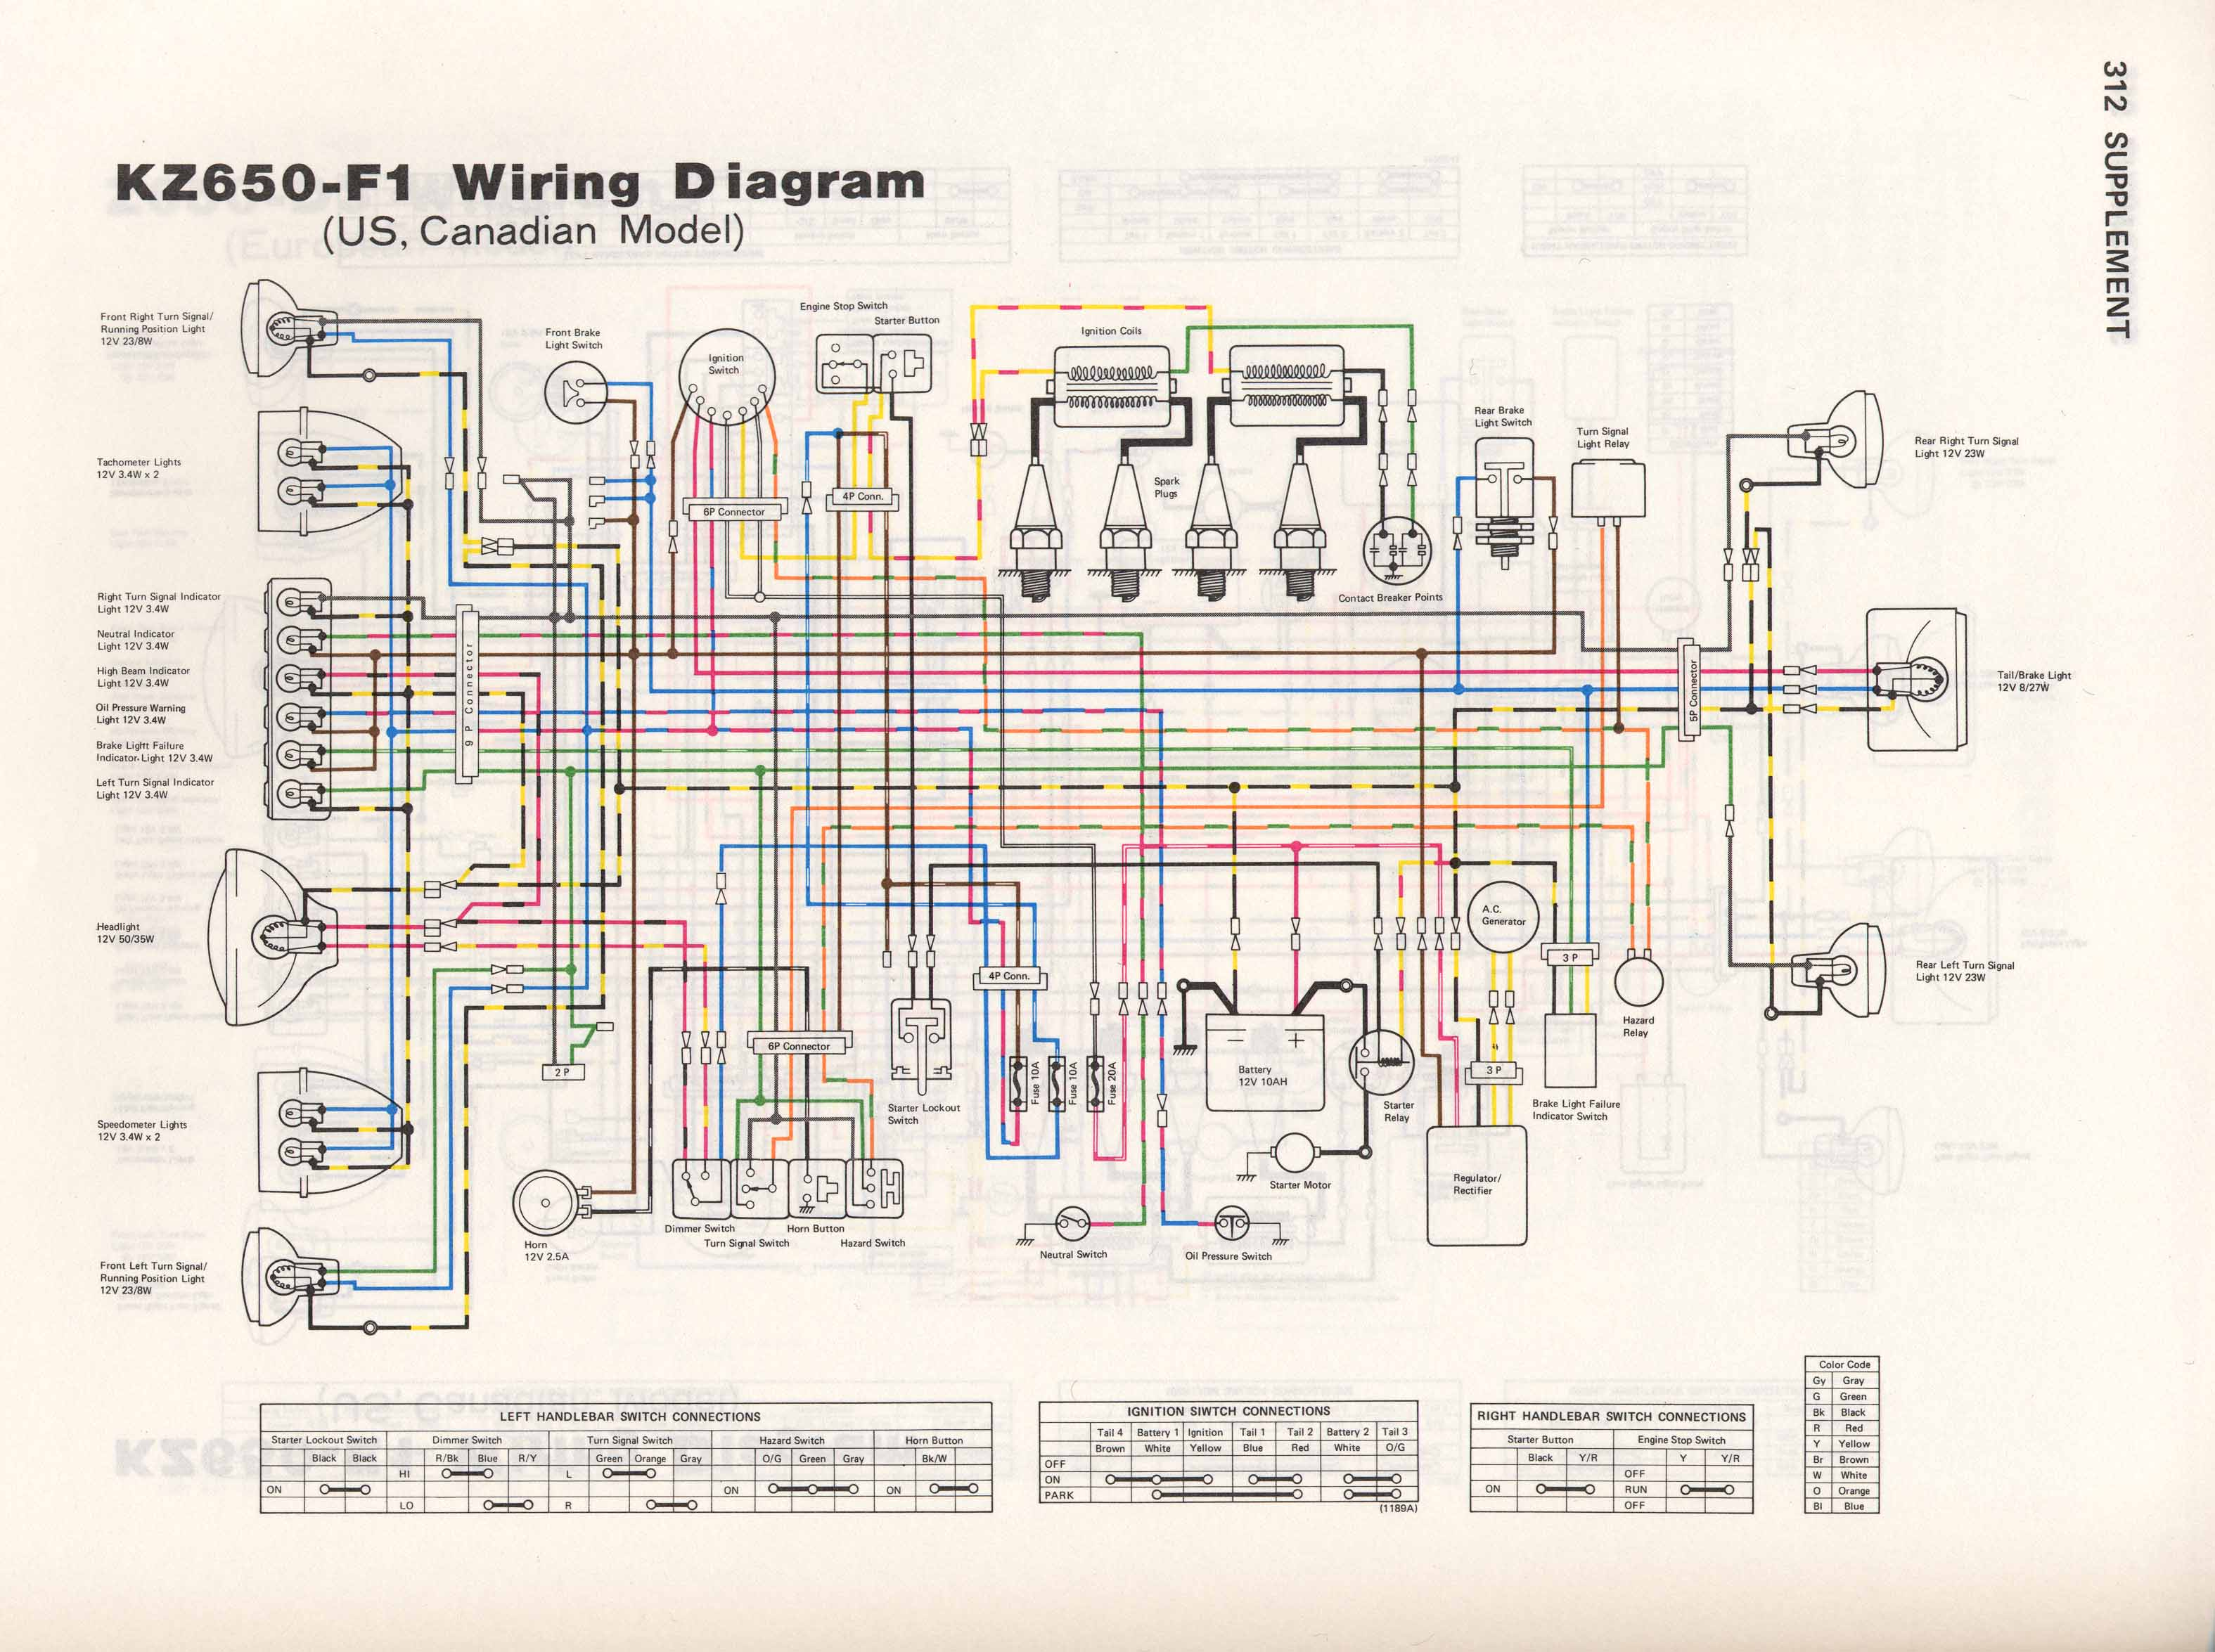 kawasaki motorcycle wiring diagrams 83 wiring diagram R6 Wiring Diagram diagram wiring kz650 e1 data wiring diagramkz650 info wiring diagrams kawasaki motorcycle wiring diagrams 83 diagram